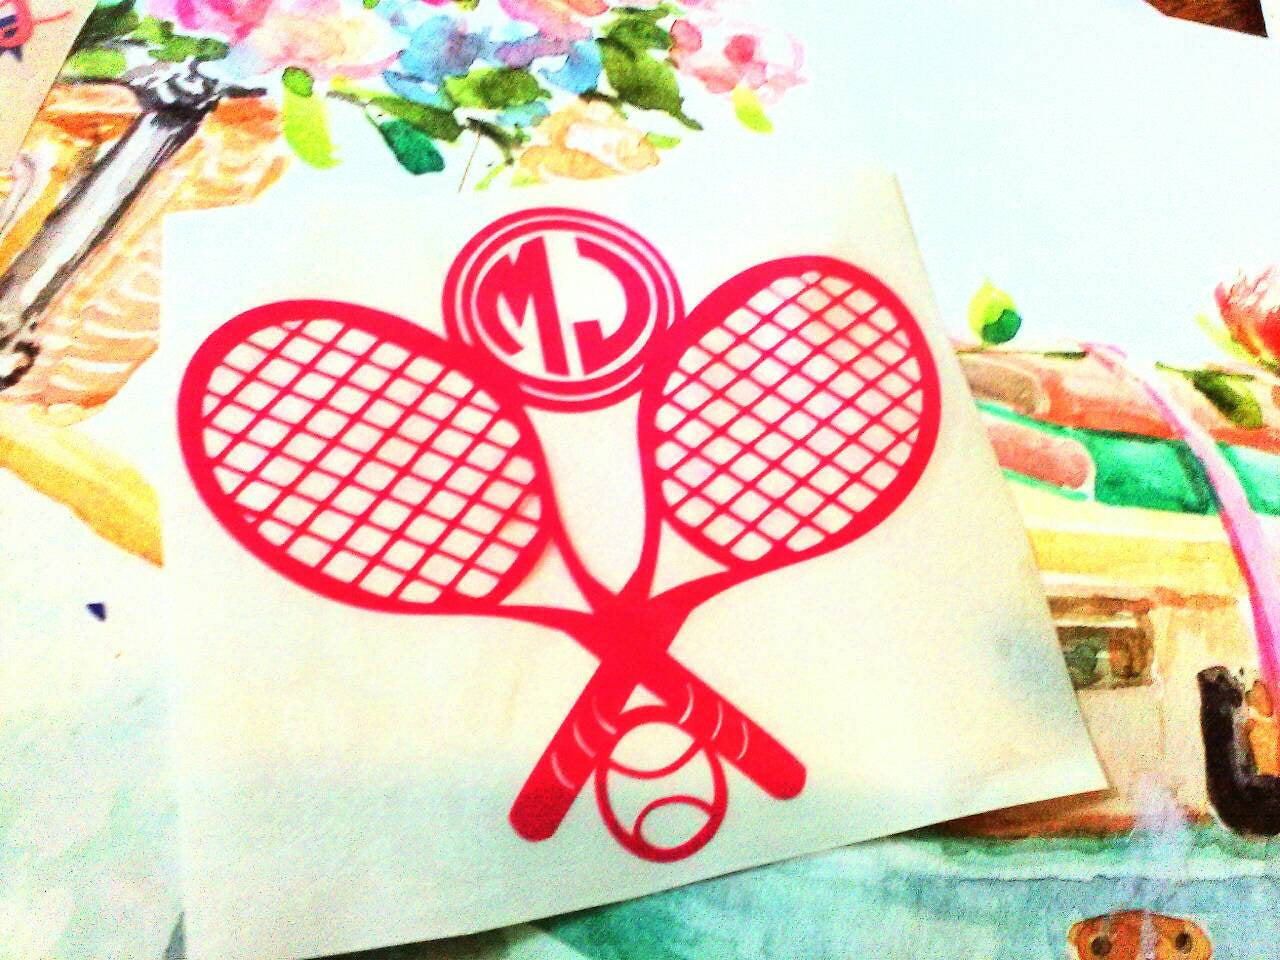 Doubles Tennis Monogram, Tennis Racket decal-Lettermix Studio